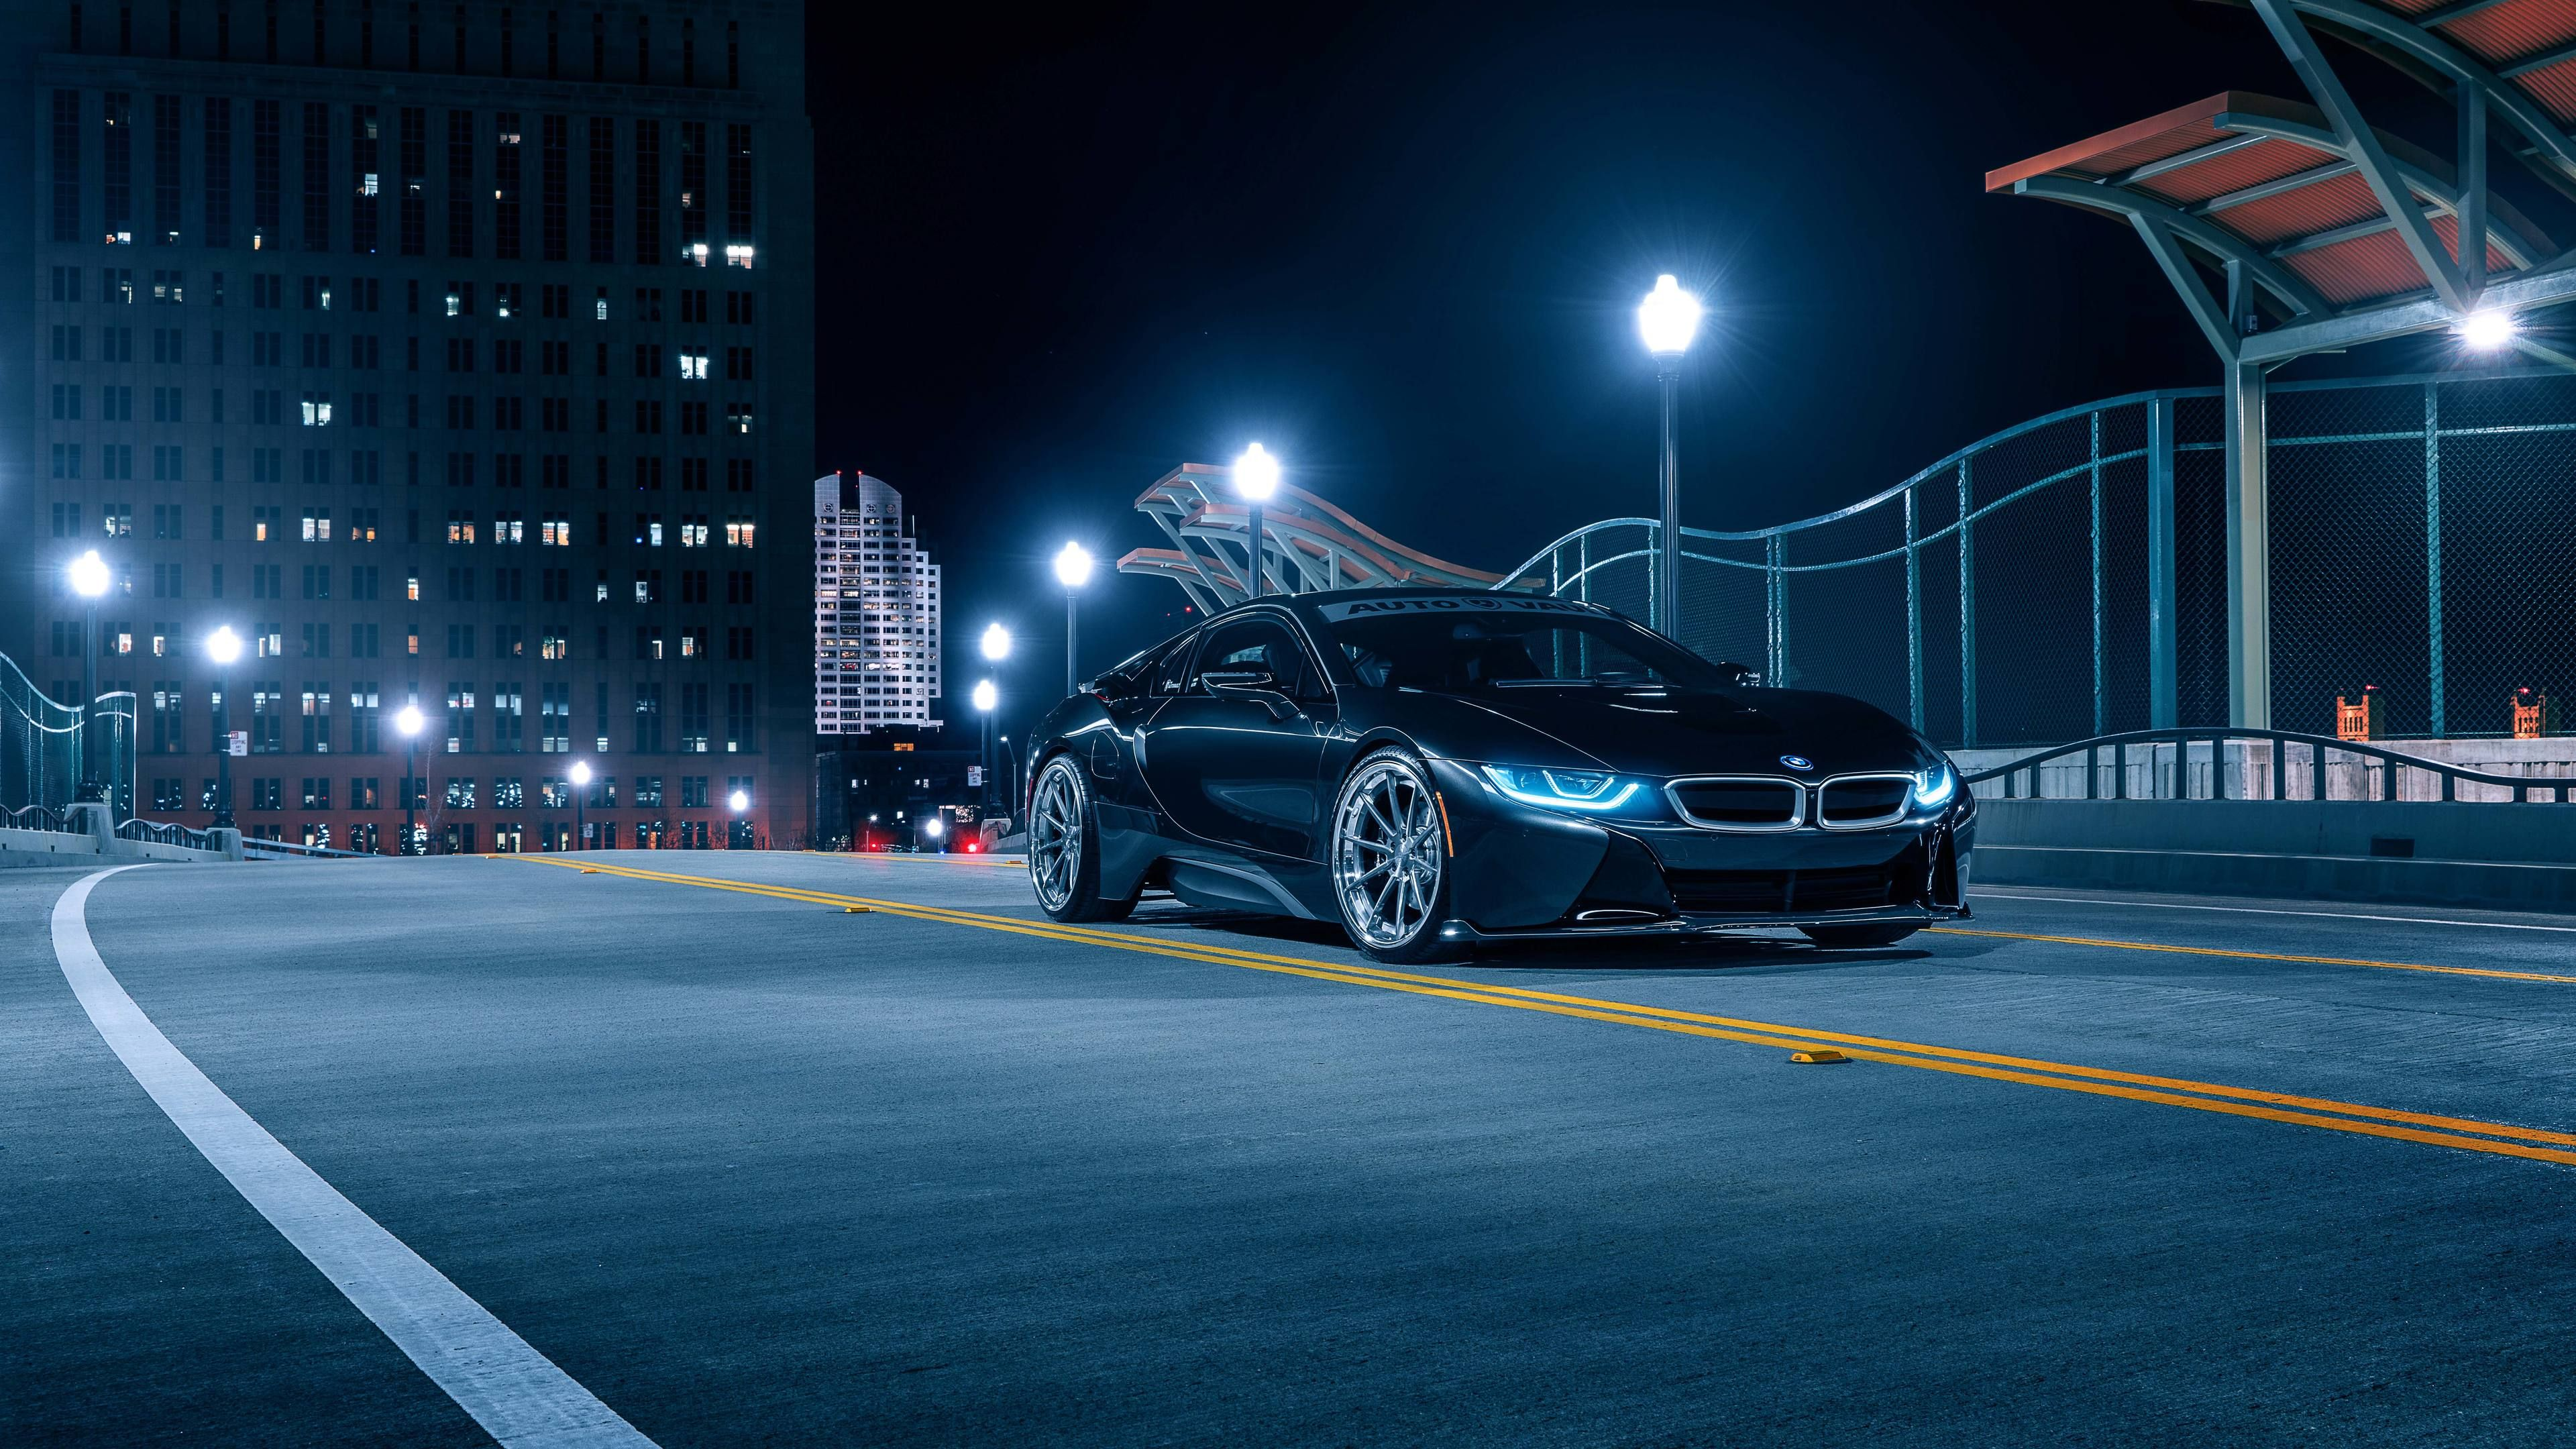 Bmw Aristo I8 4k Hd Wallpapers Cars Wallpapers Bmw Wallpapers Bmw I8 Wallpapers 4k Wallpapers 5k Wallpapers 4k Wallpa Bmw I8 Bmw Wallpapers Car Wallpapers